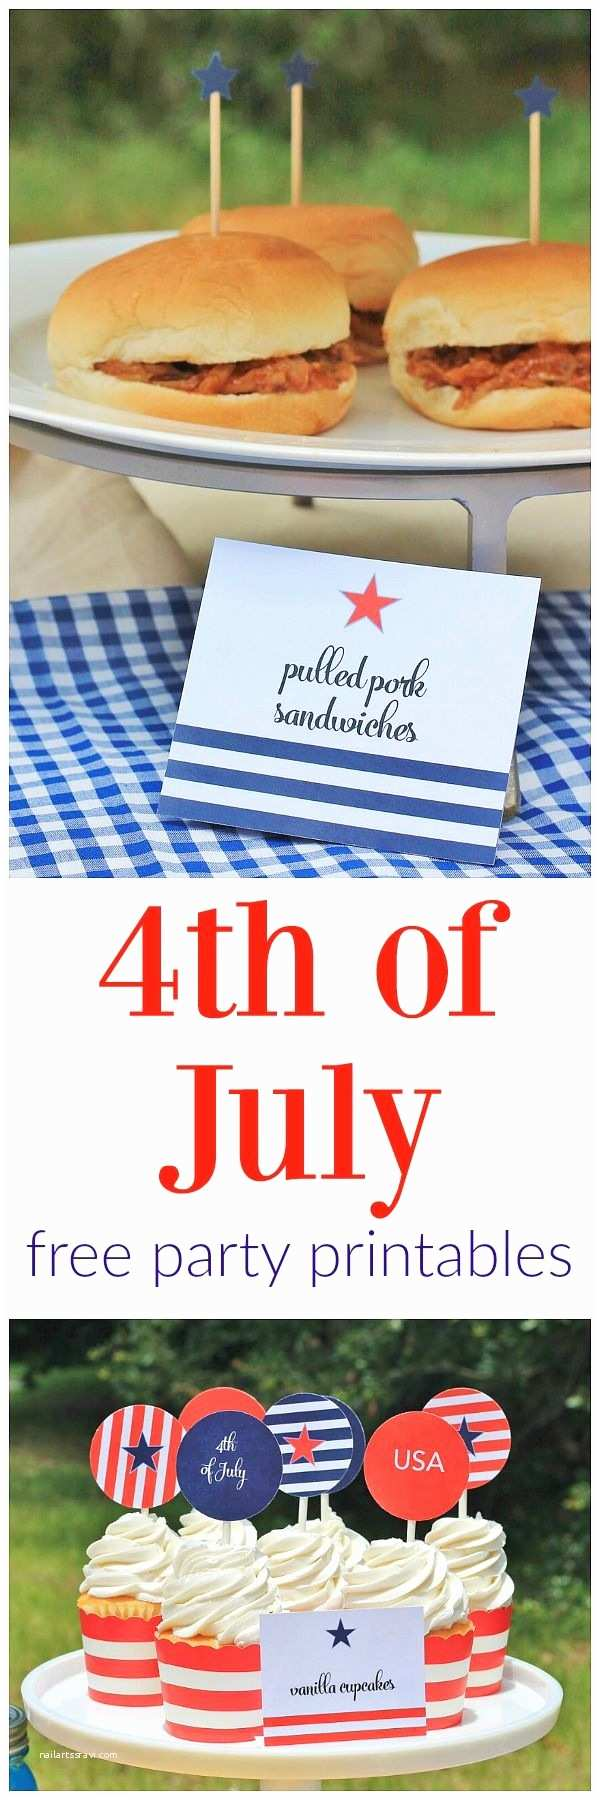 4th Of July Party Invitations 4th Of July Party Free Printable Set Includes A ton Of